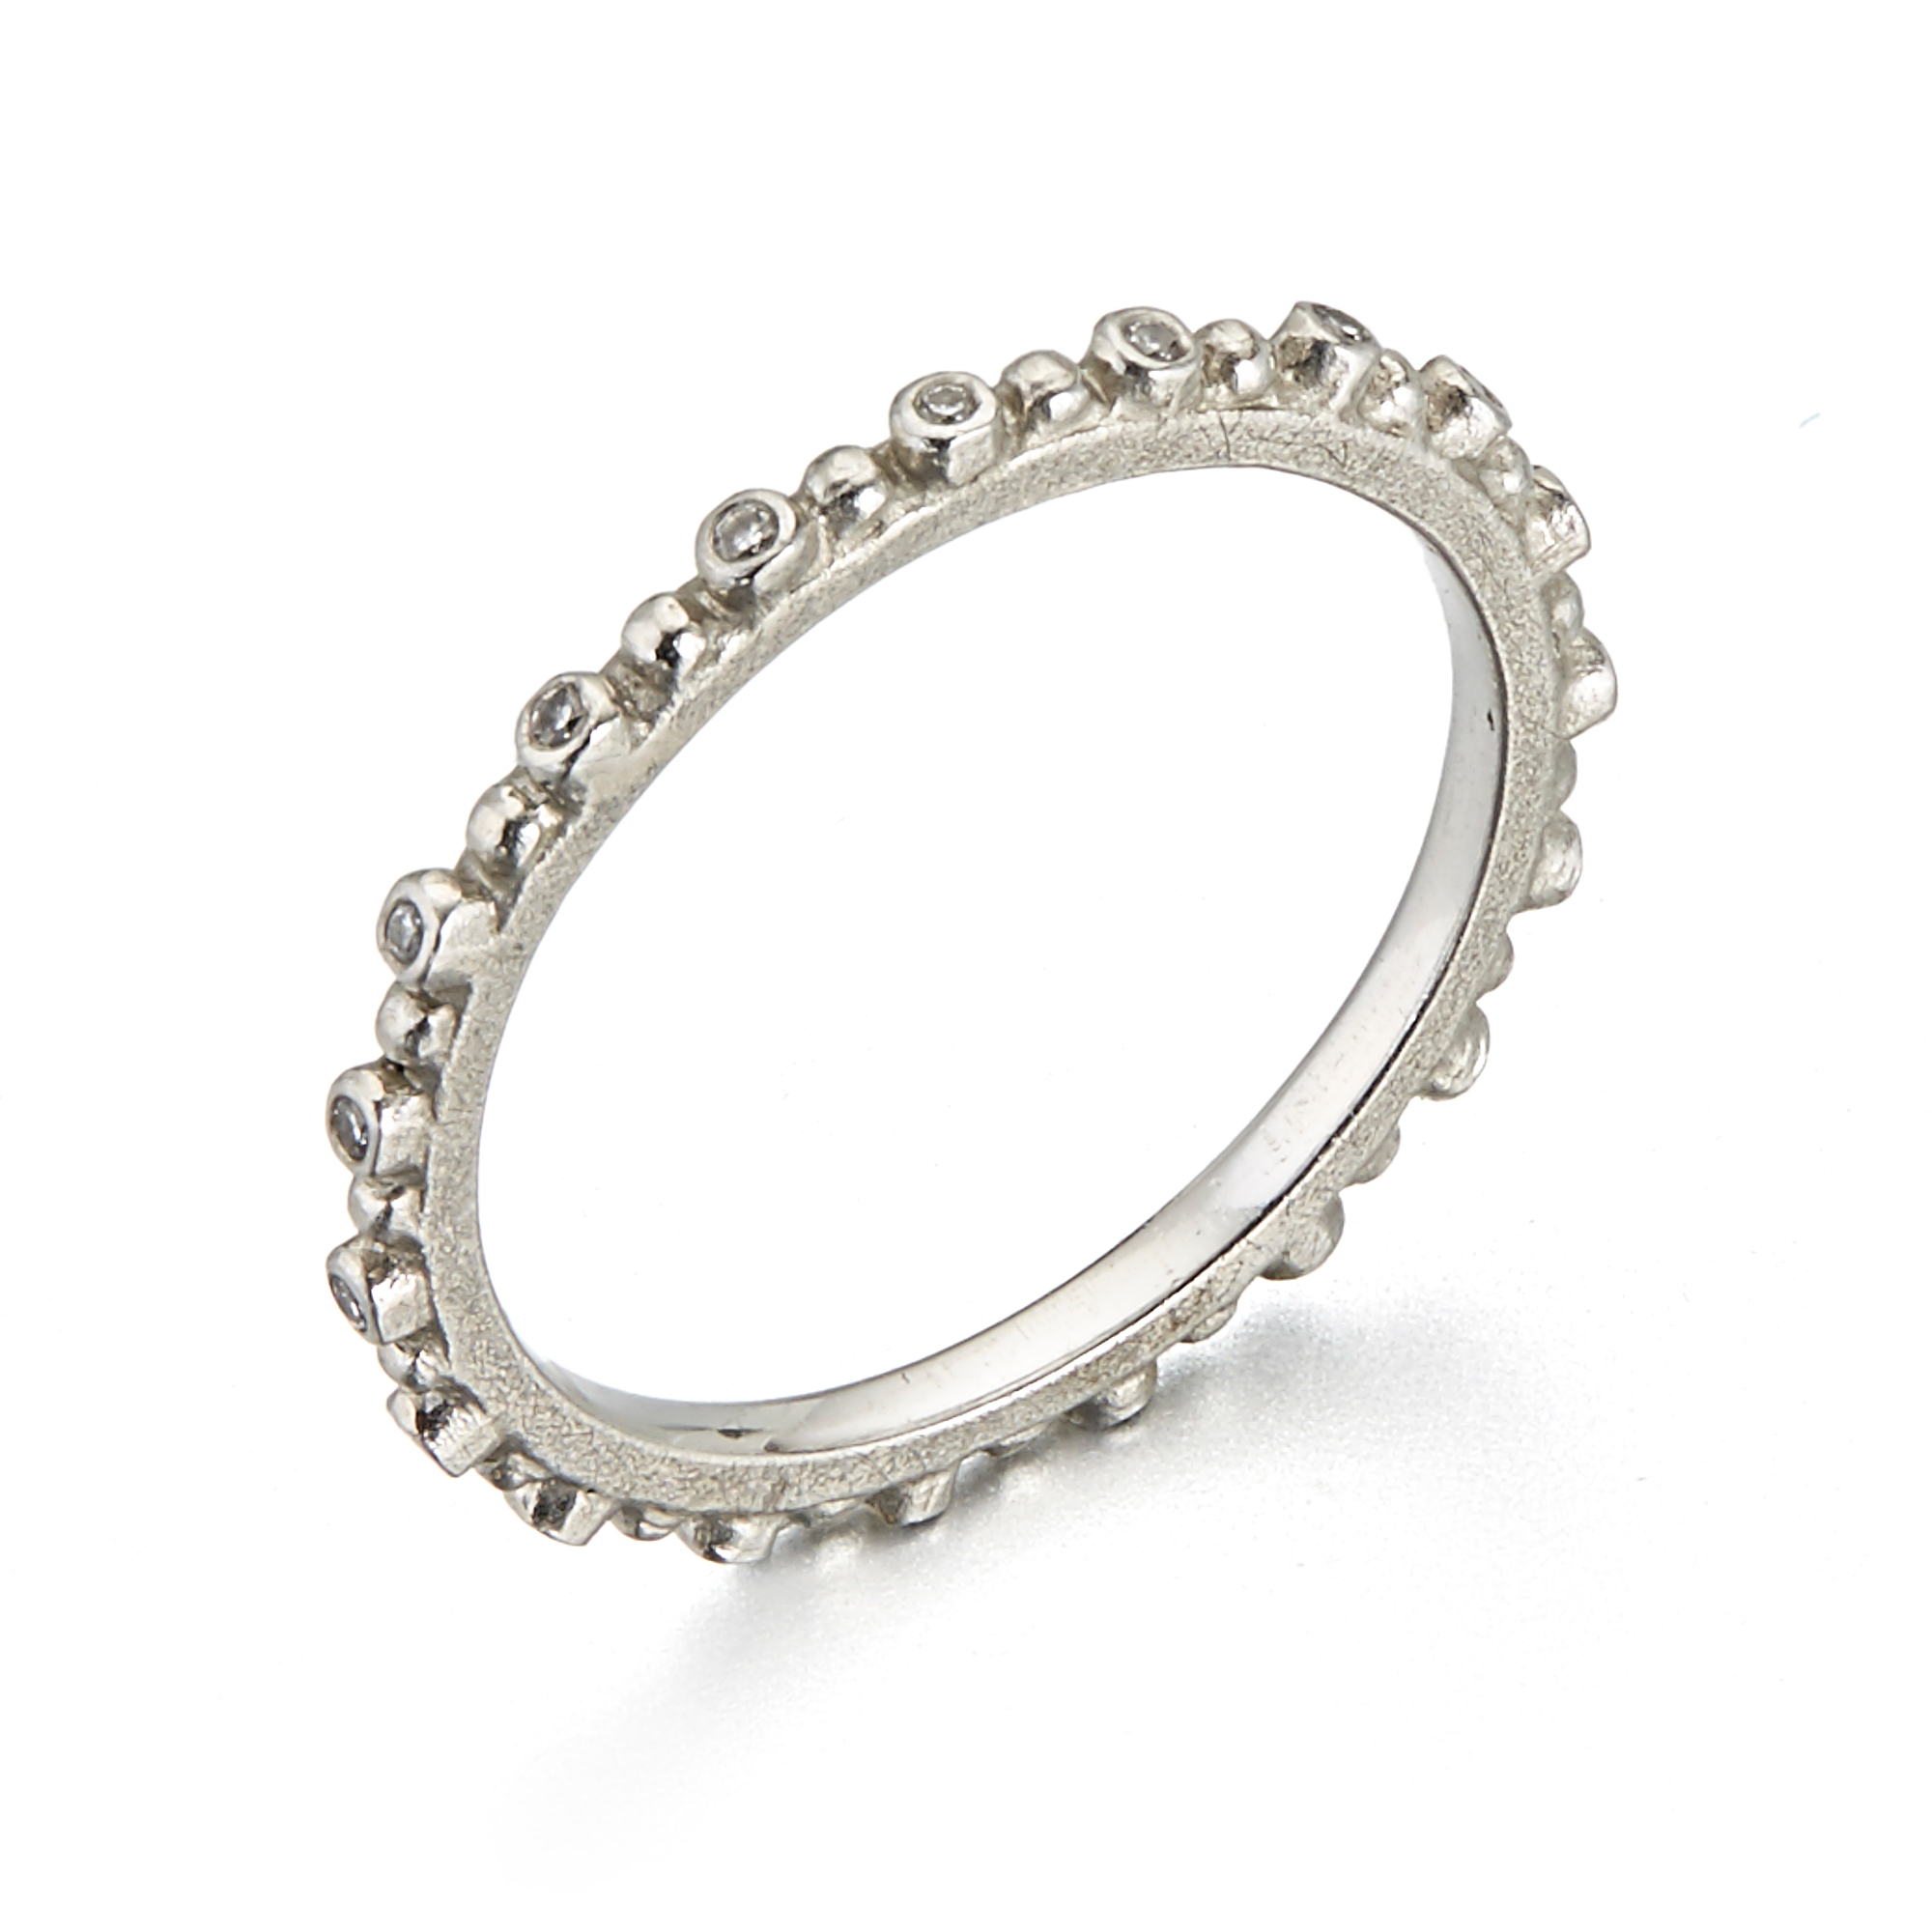 Barbara Heinrich Diamond Platinum Pins & Needles Eternity Band